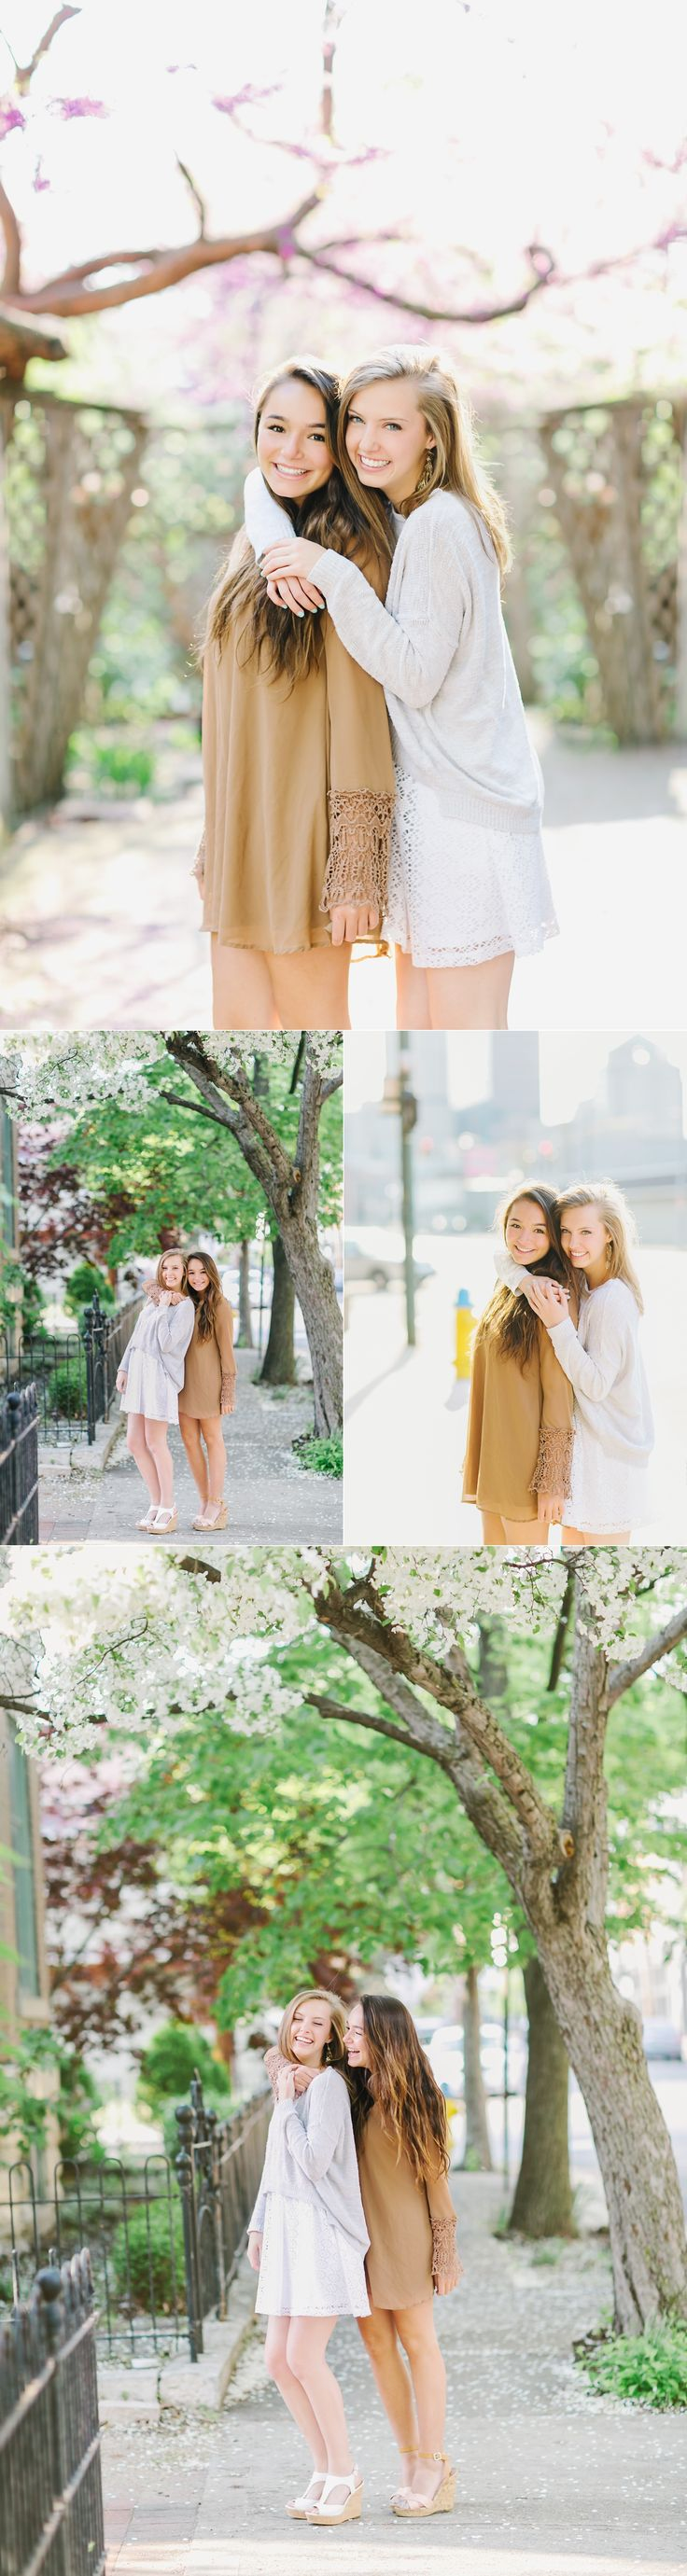 Dayton Ohio Best Friend Session - Lux Senior Photography - http://www.luxseniorphotography.com/blog/best-friends-photoshoot-gracie-and-vivi